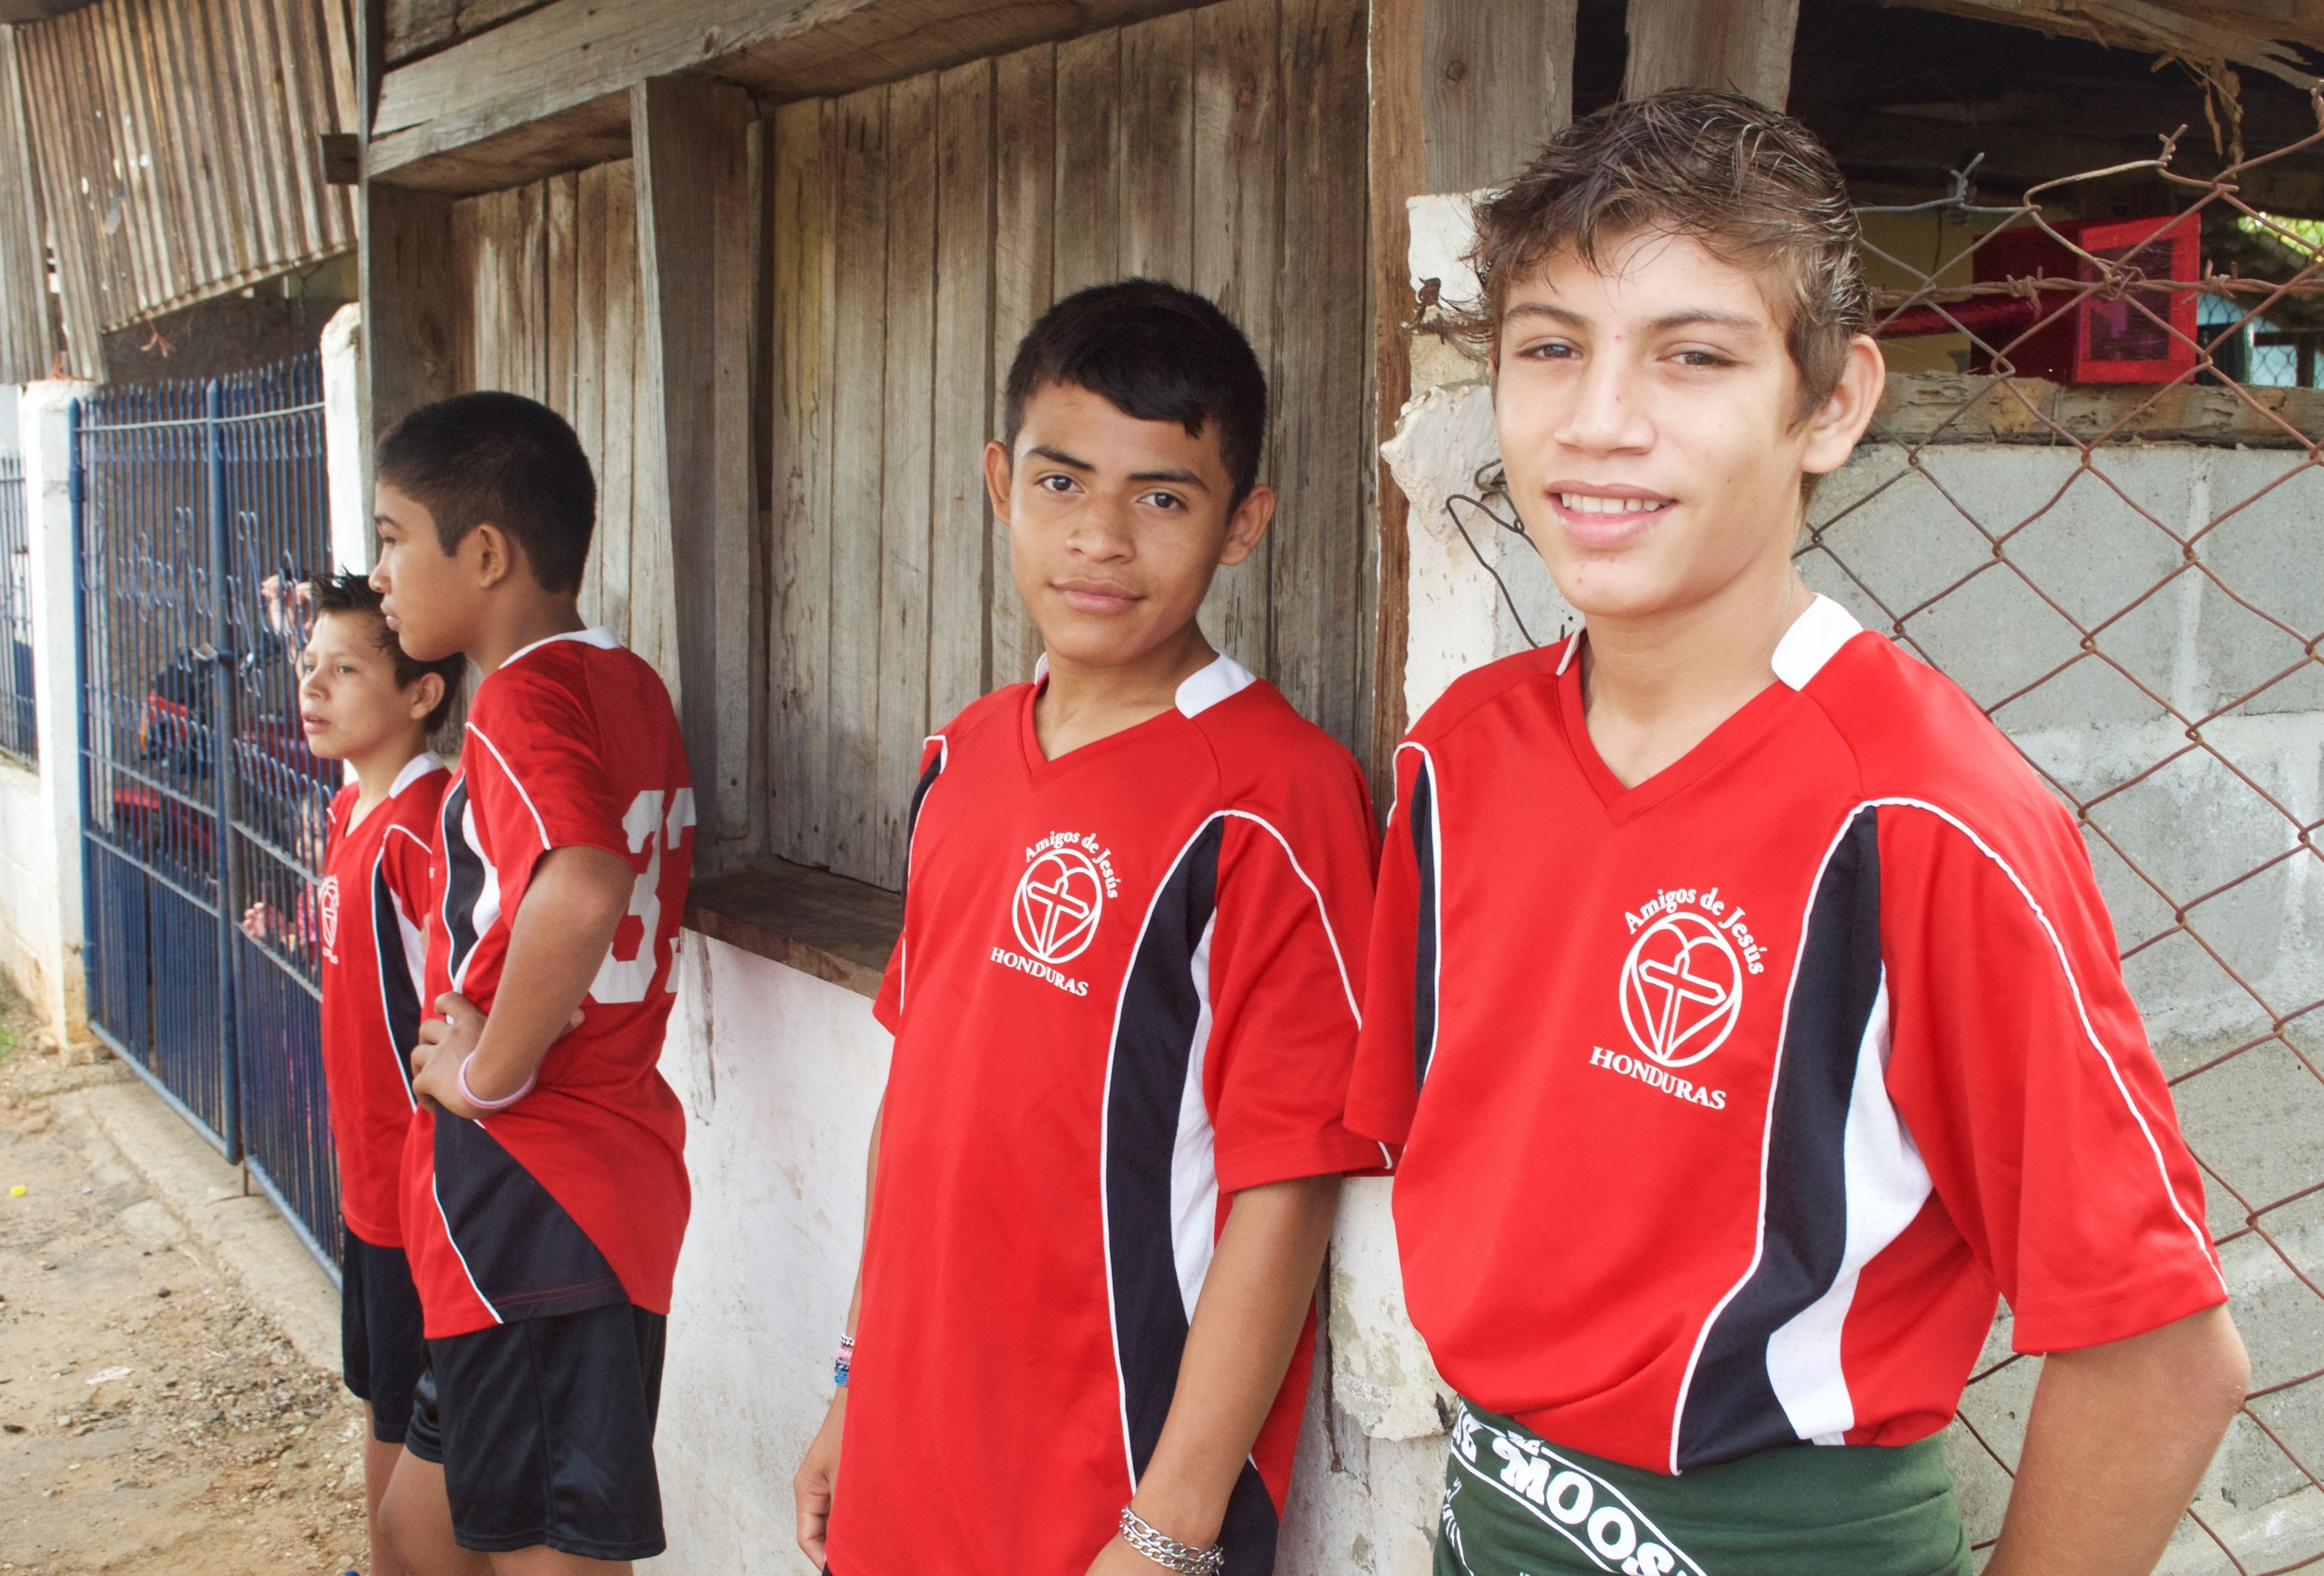 Andres (second from right) and friends pose at a soccer game.